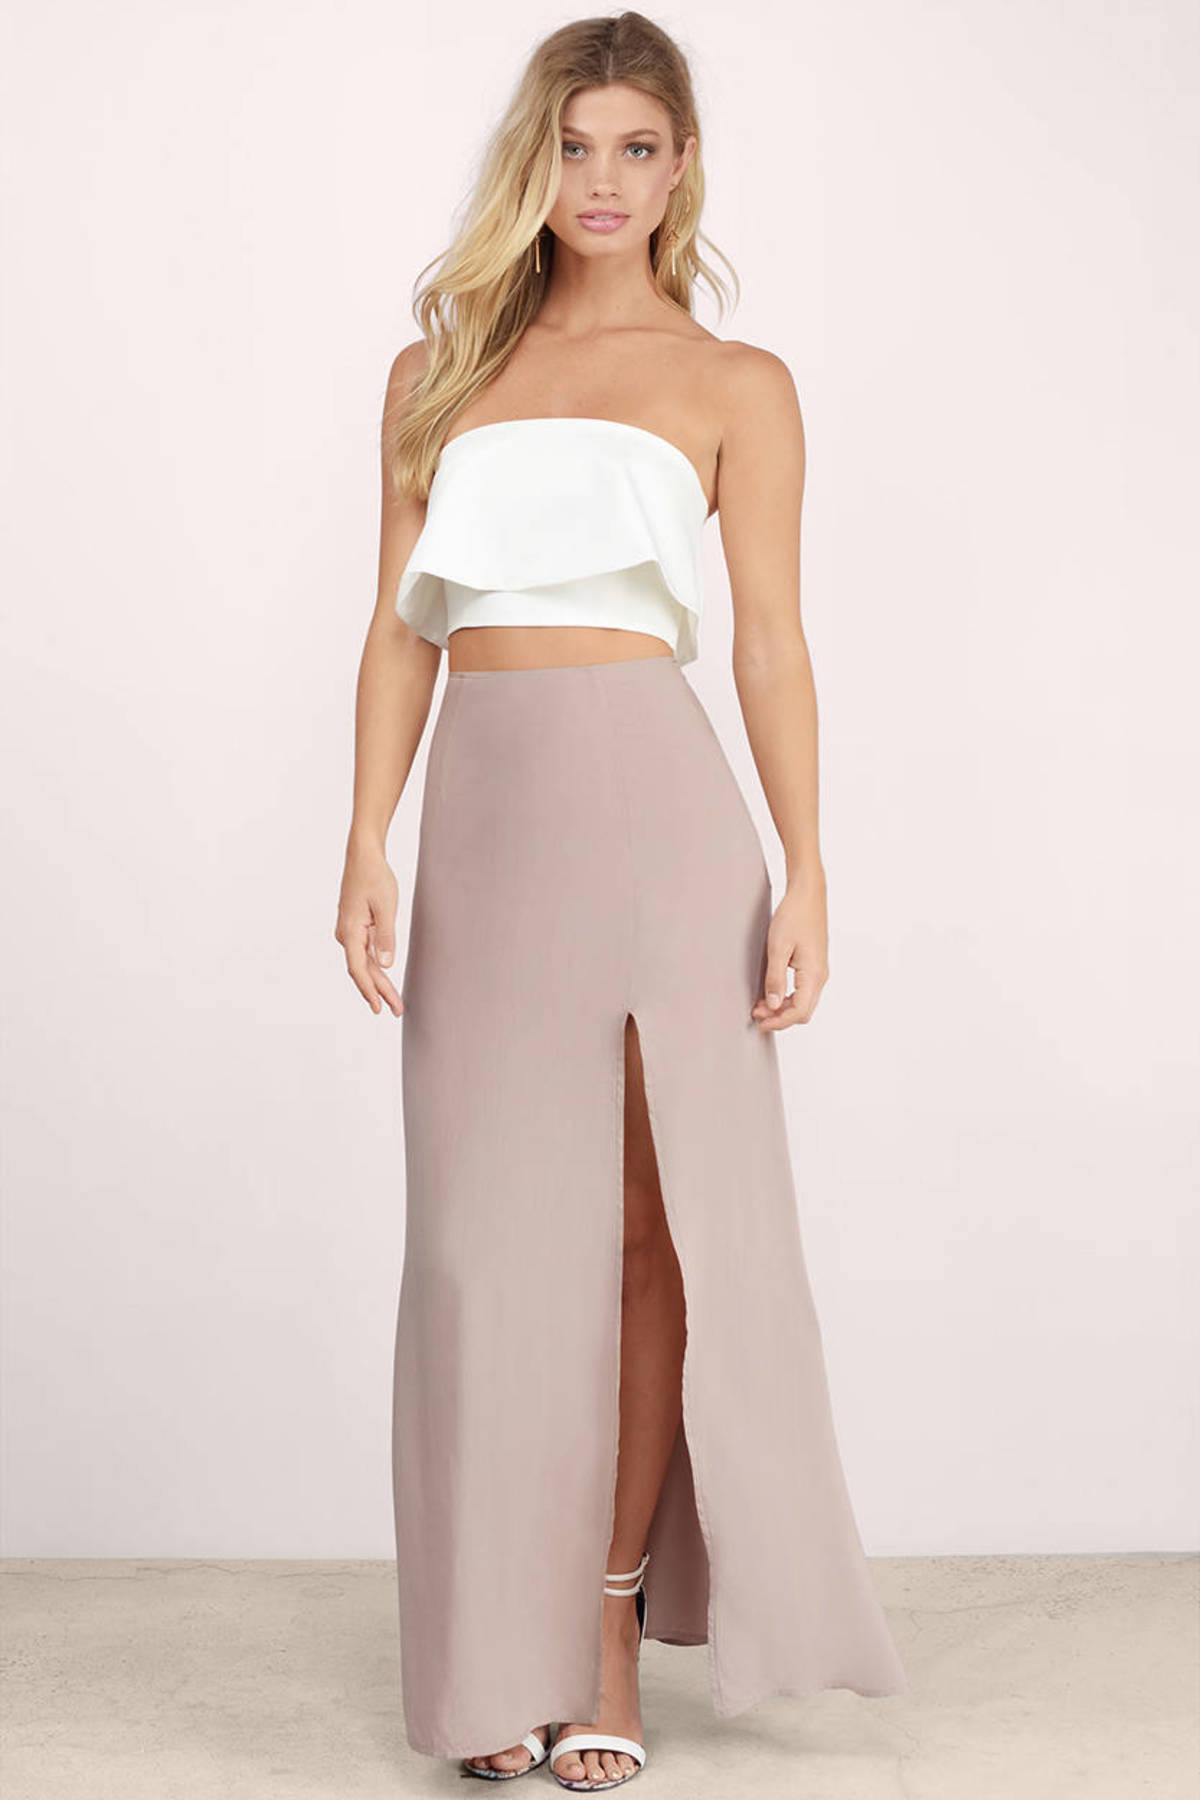 Trendy Taupe Skirt - Thigh High Slit Skirt - $17.00